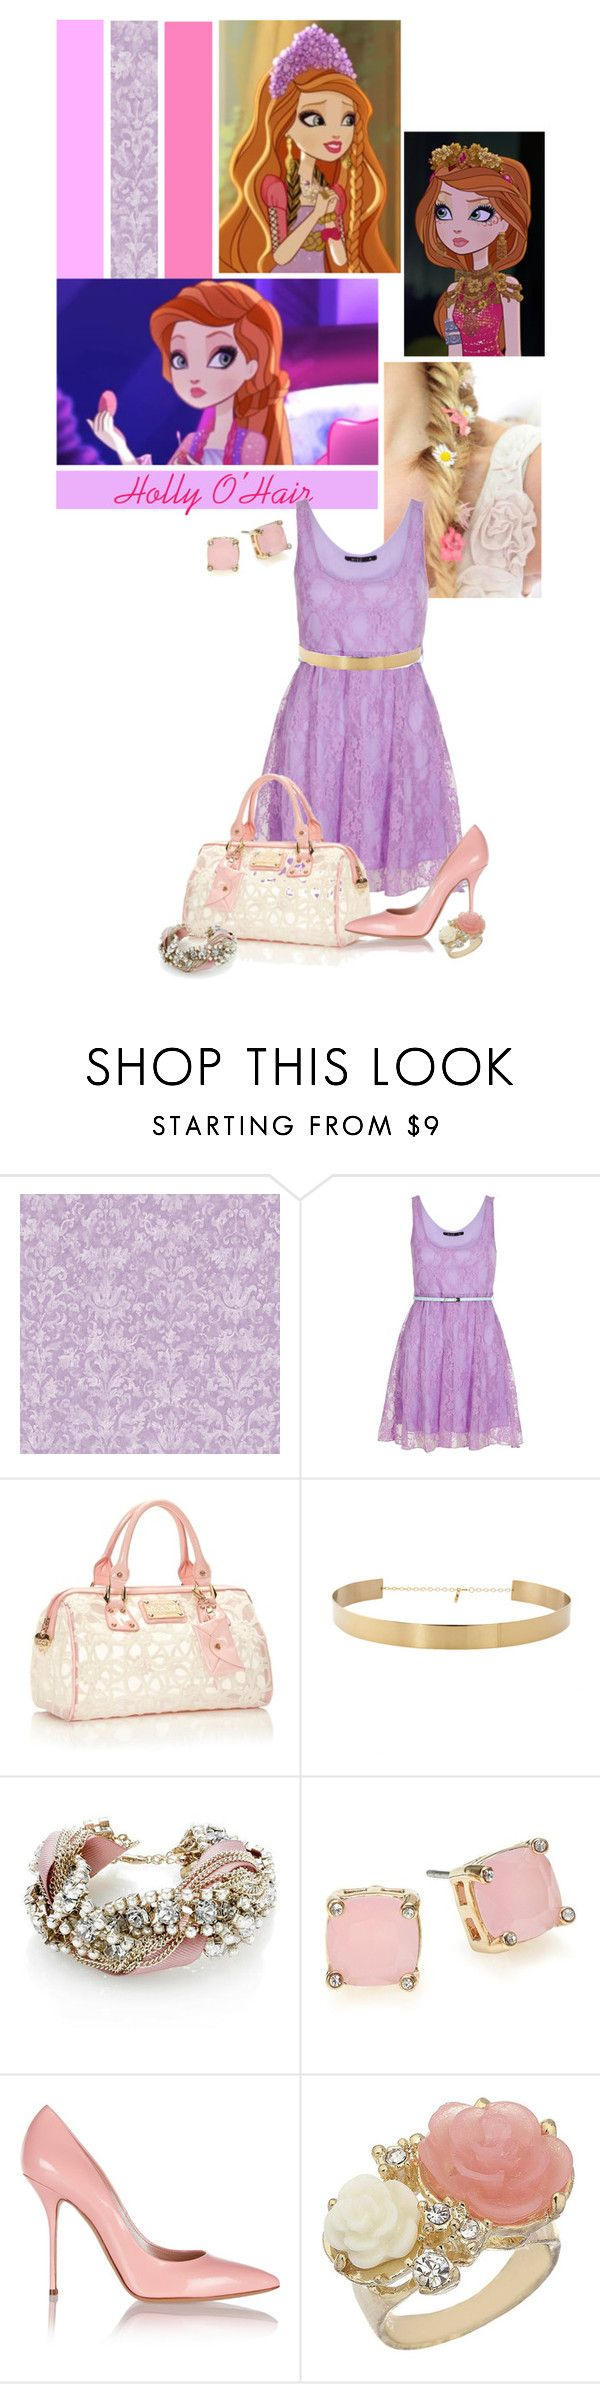 """""""Holly O'hair"""" by srta-sr ❤ liked on Polyvore featuring York Wallcoverings, Miso, Floozie by Frost French, Monsoon, Lauren Ralph Lauren, Casadei, Miss Selfridge, women's clothing, women and female"""